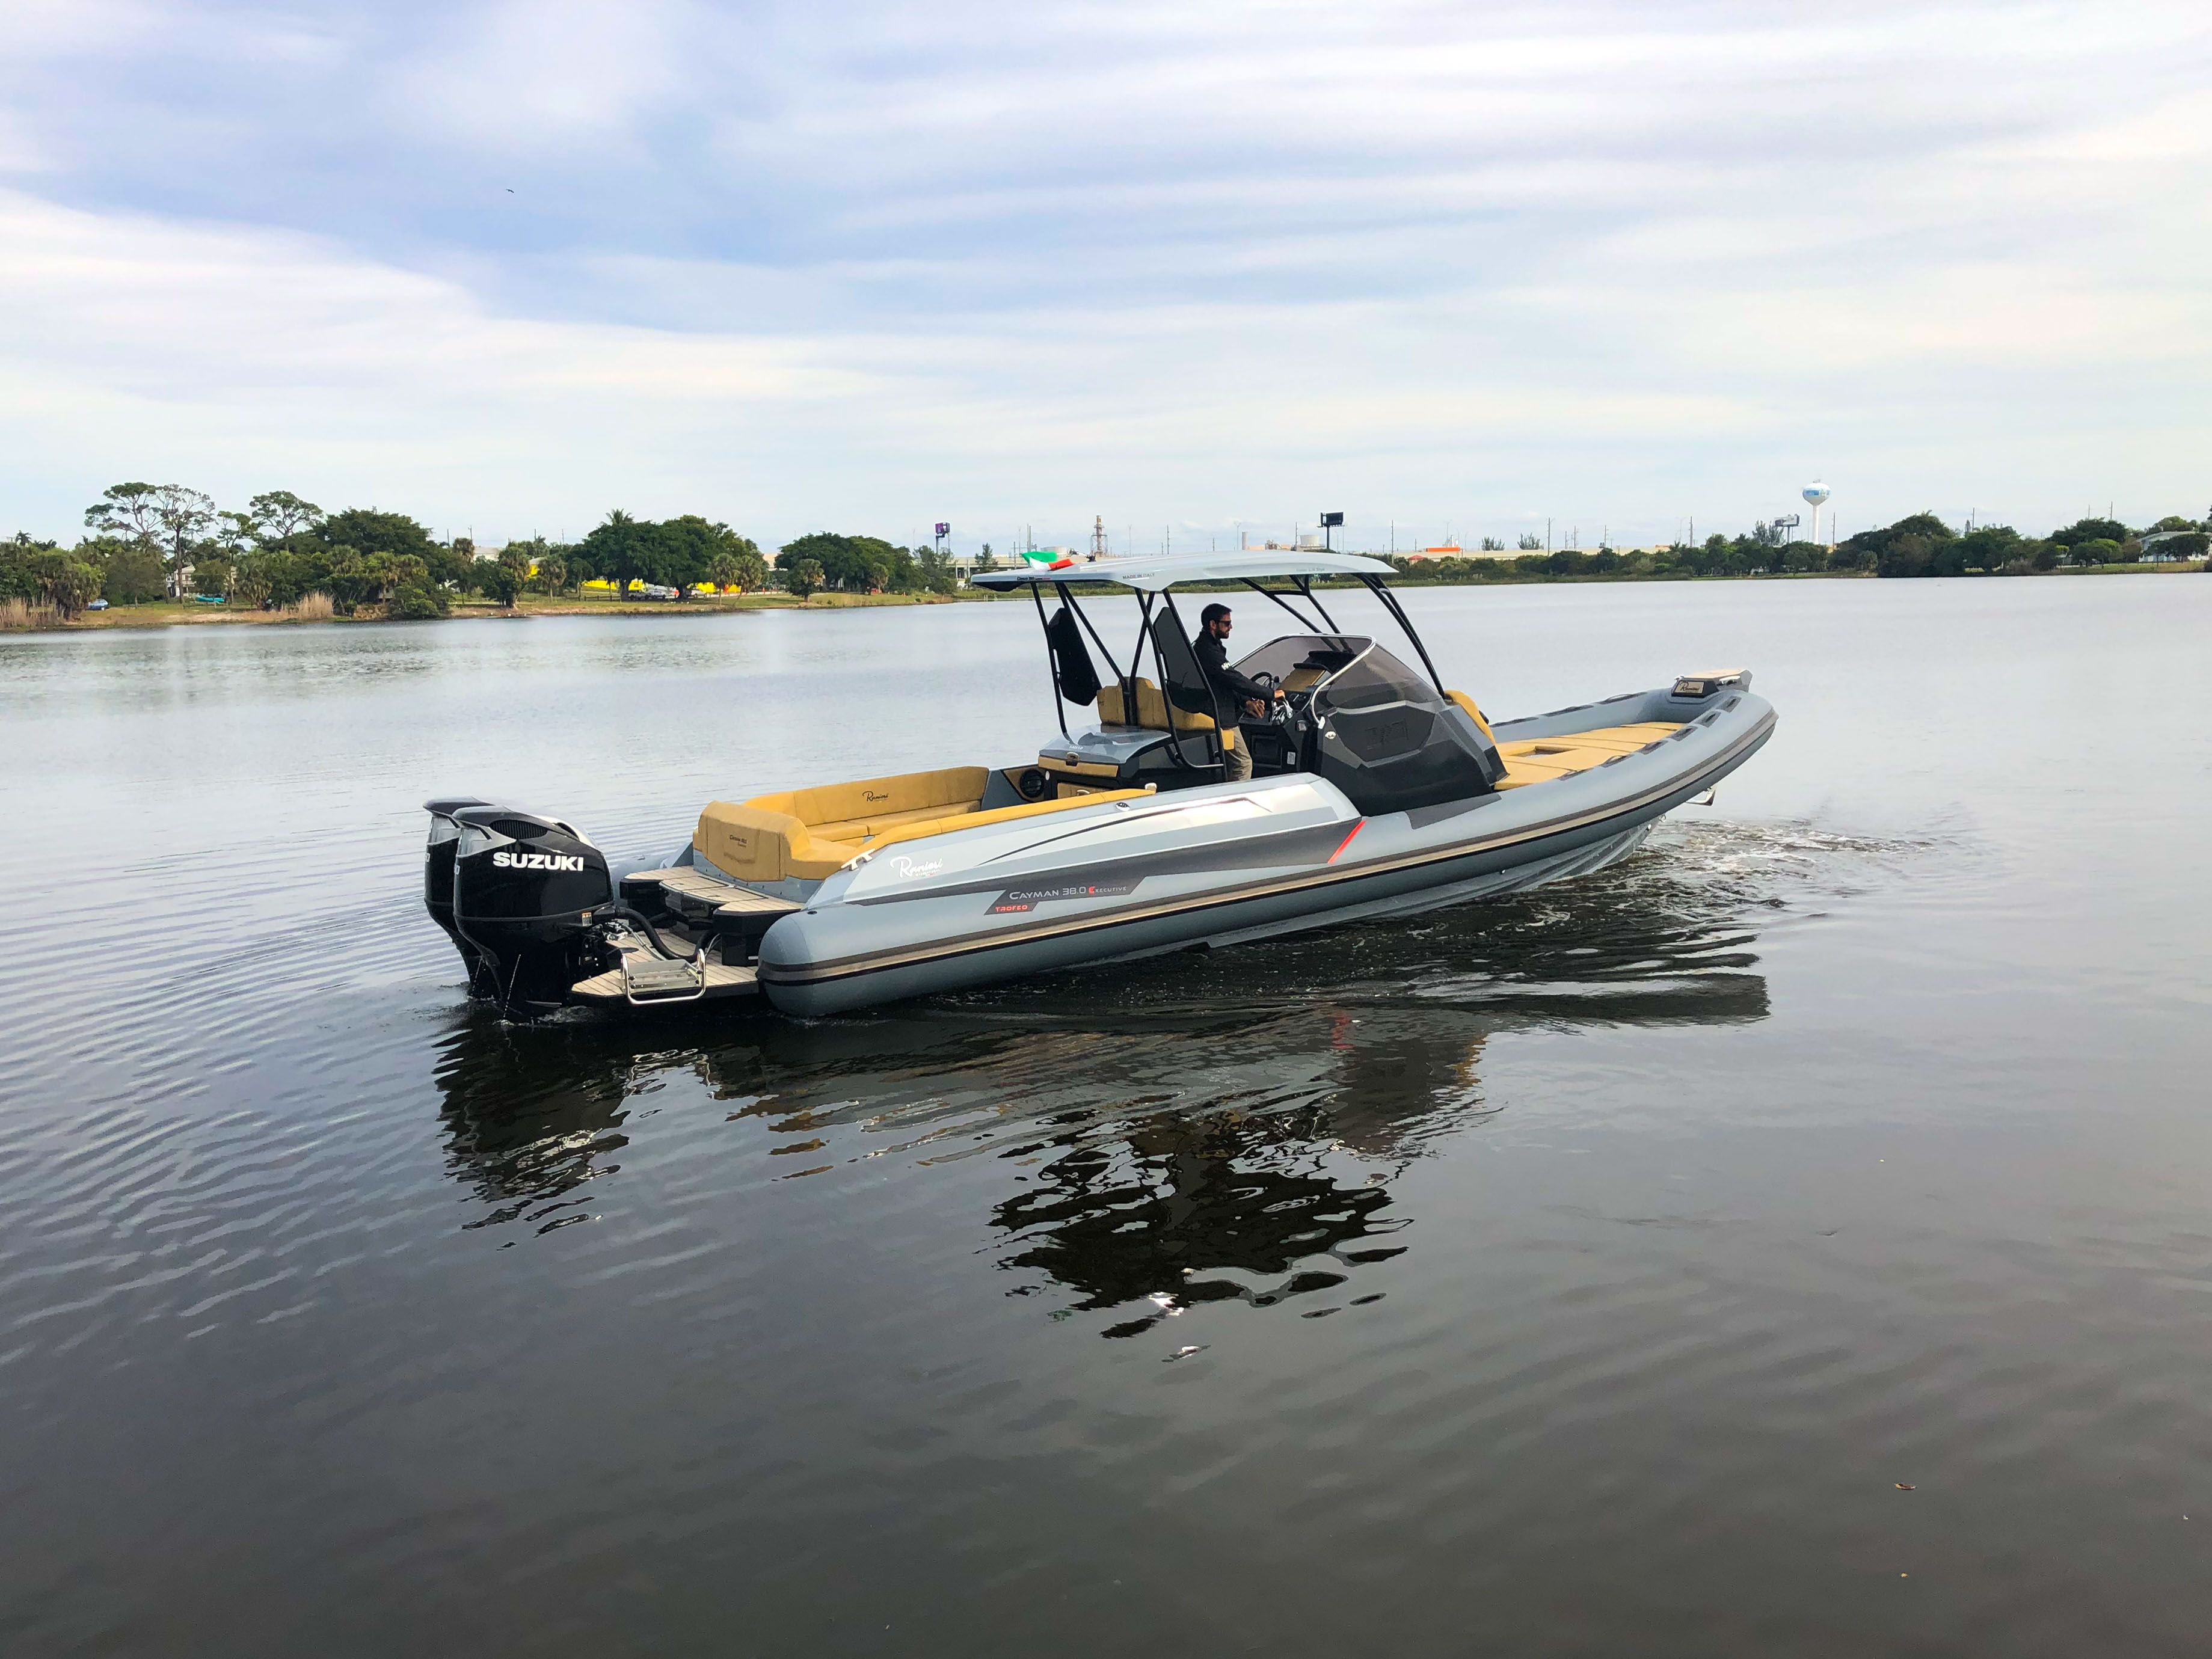 Thumbnail 52 for New 2019 Ranieri Cayman 38 Executive boat for sale in West Palm Beach, FL